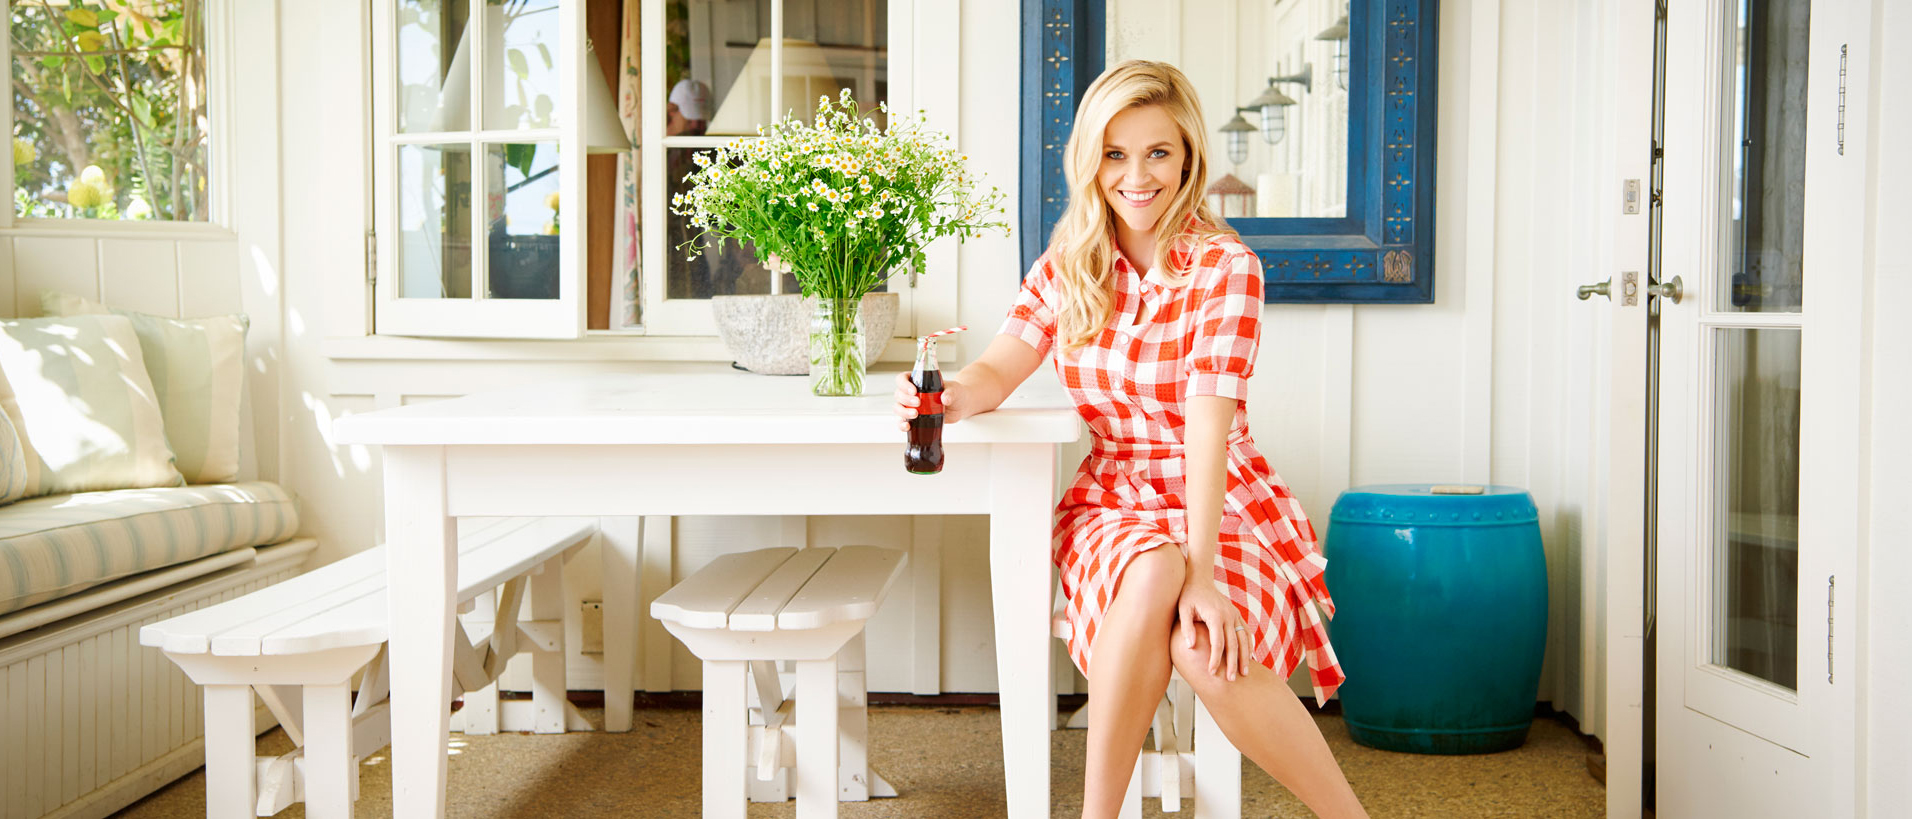 What Reese Witherspoon And I Have In Common (Spoiler Alert: We're Both Pigeons)